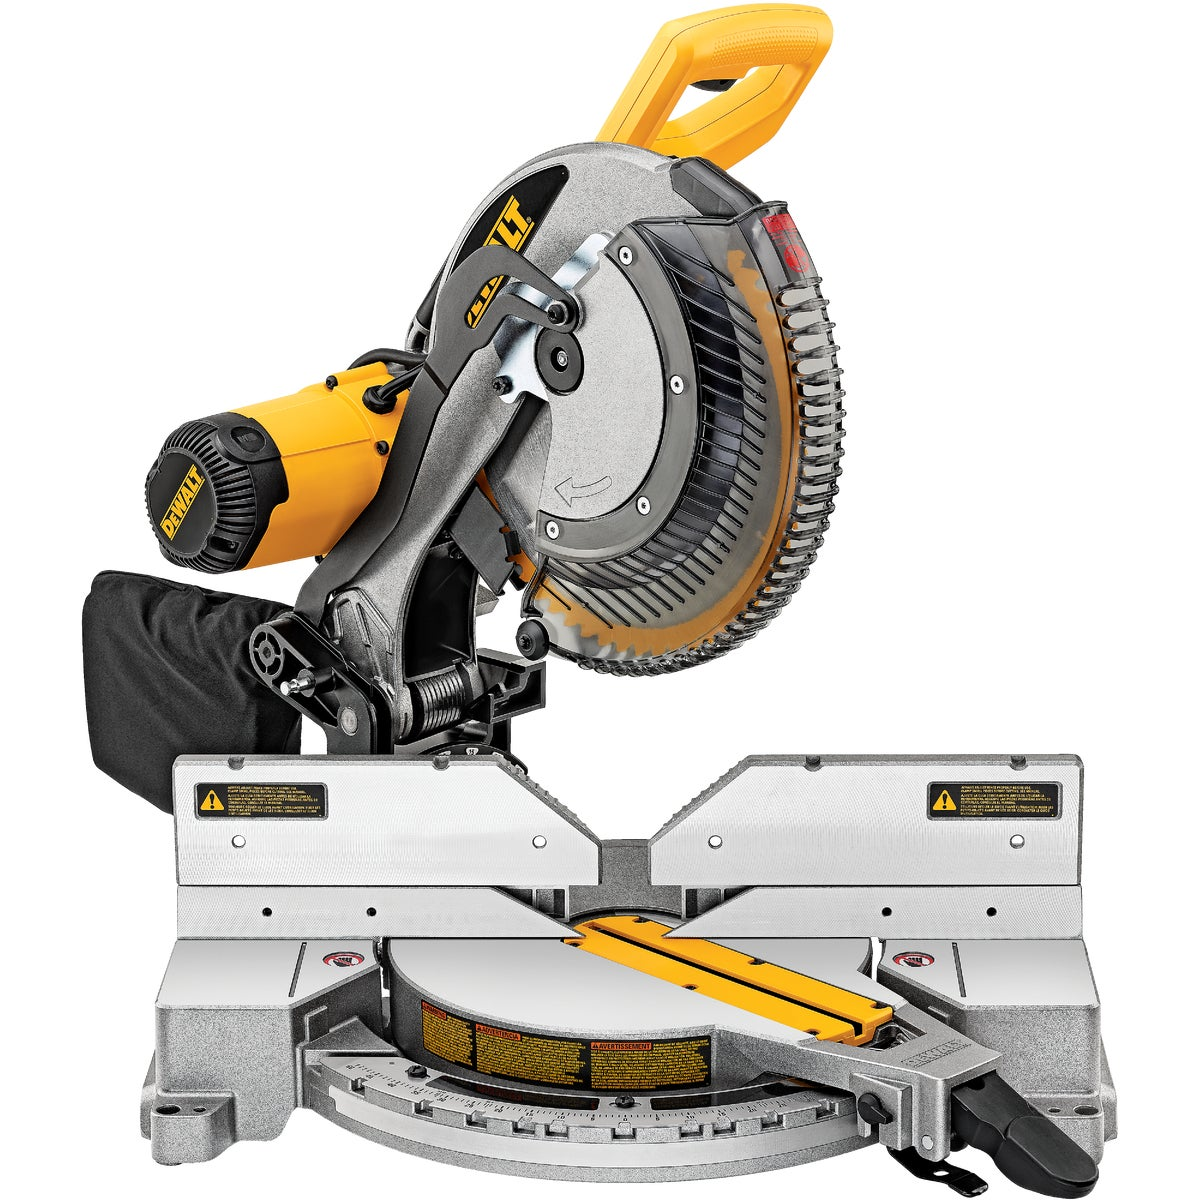 "12"" D/B CMPD MITER SAW - DW716 by DeWalt"